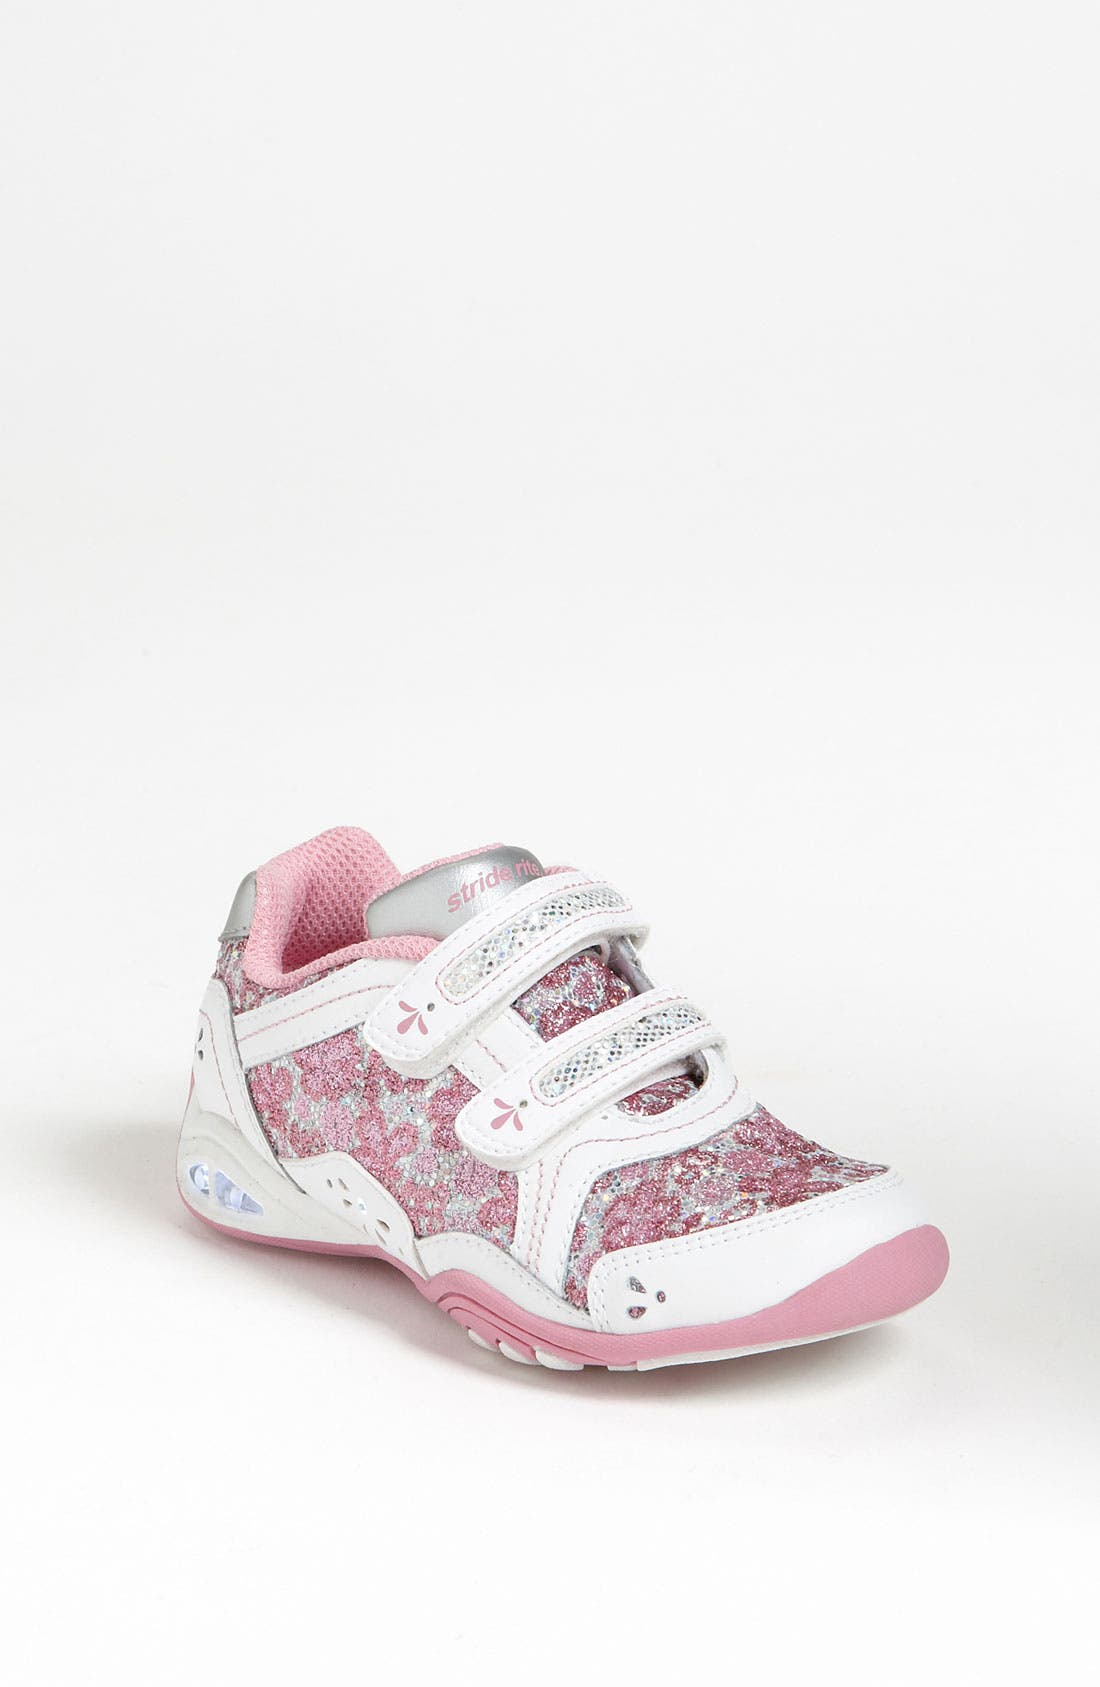 Main Image - Stride Rite 'Jade' Sneaker (Walker, Toddler & Little Kid)